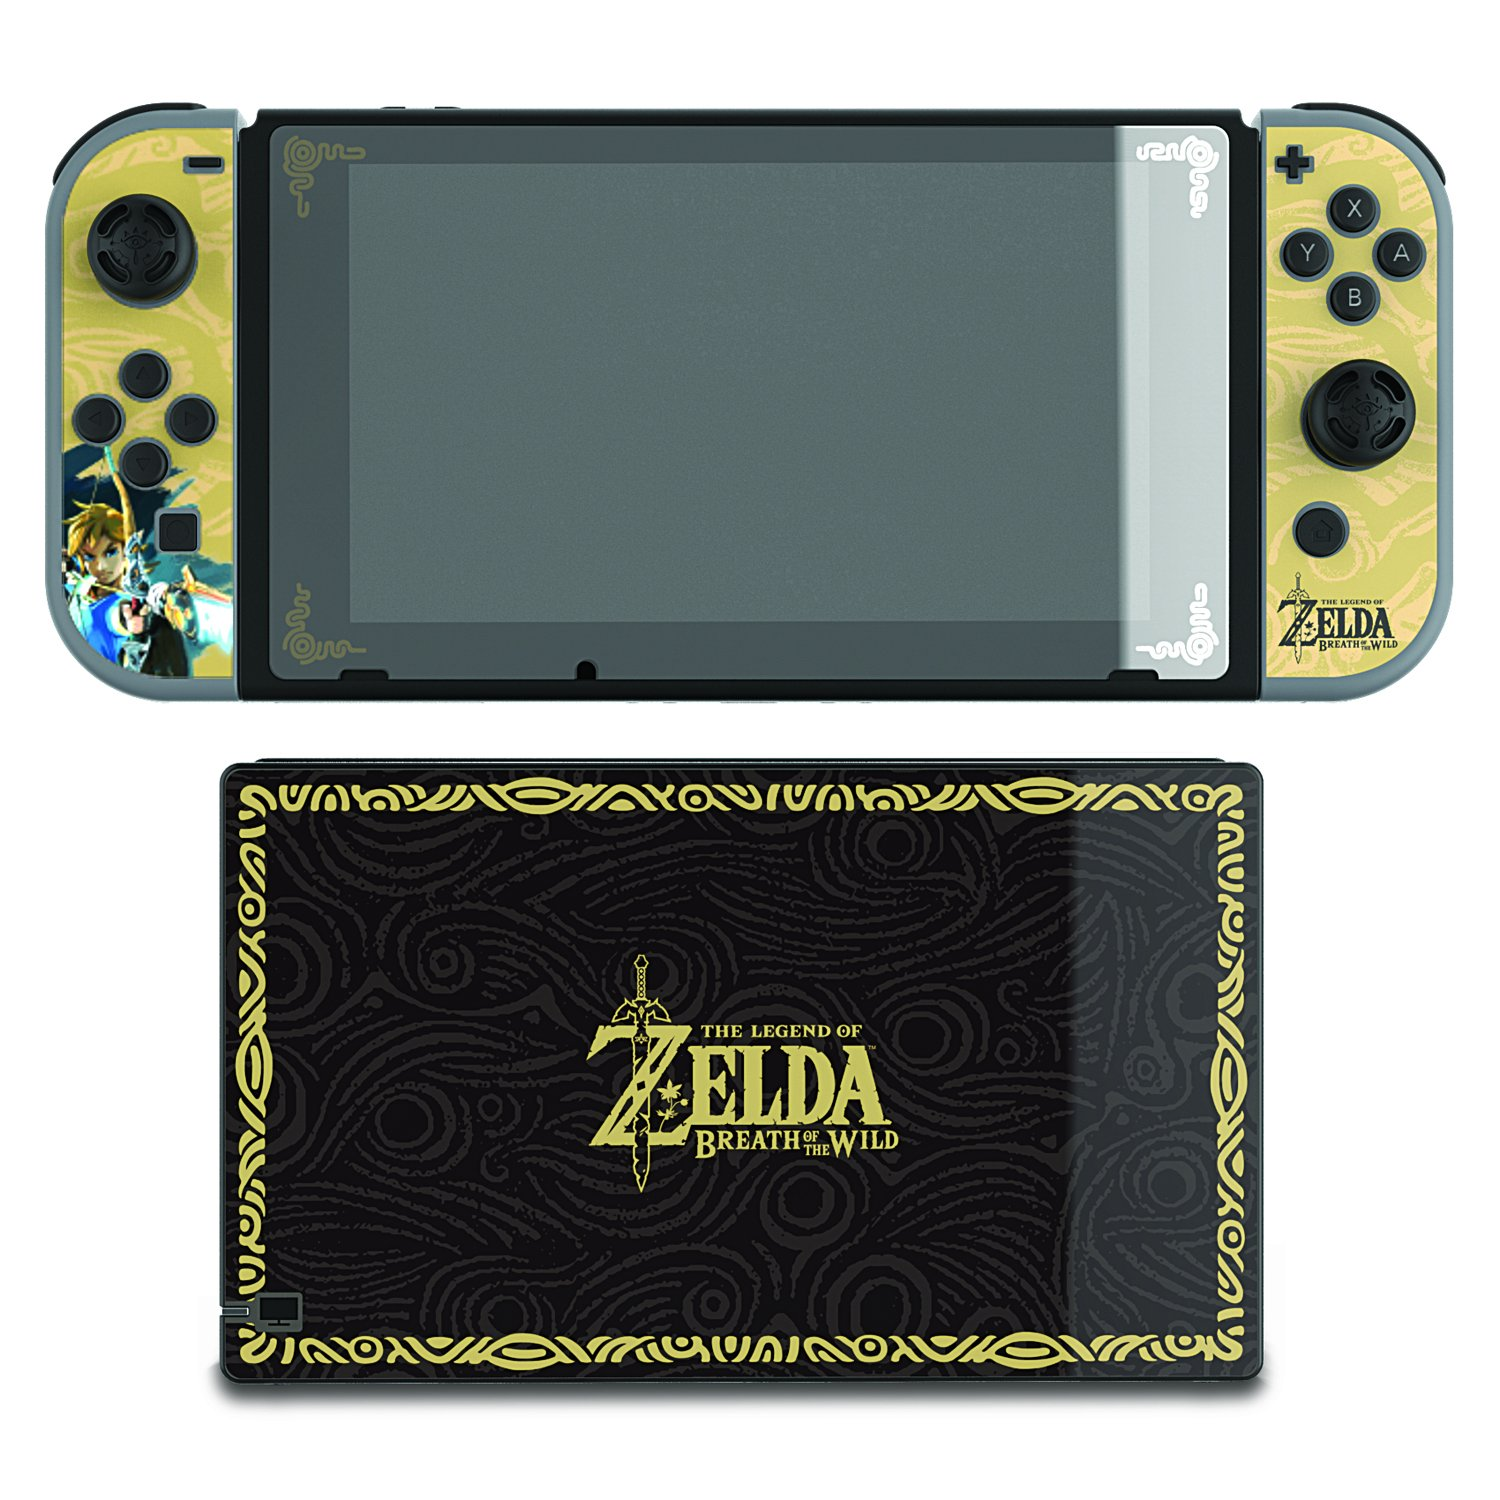 Pdp Nintendo Switch Zelda Collectors Edition Screen Protection Mesin Grey Skins 500 016 Eu Pc Video Games